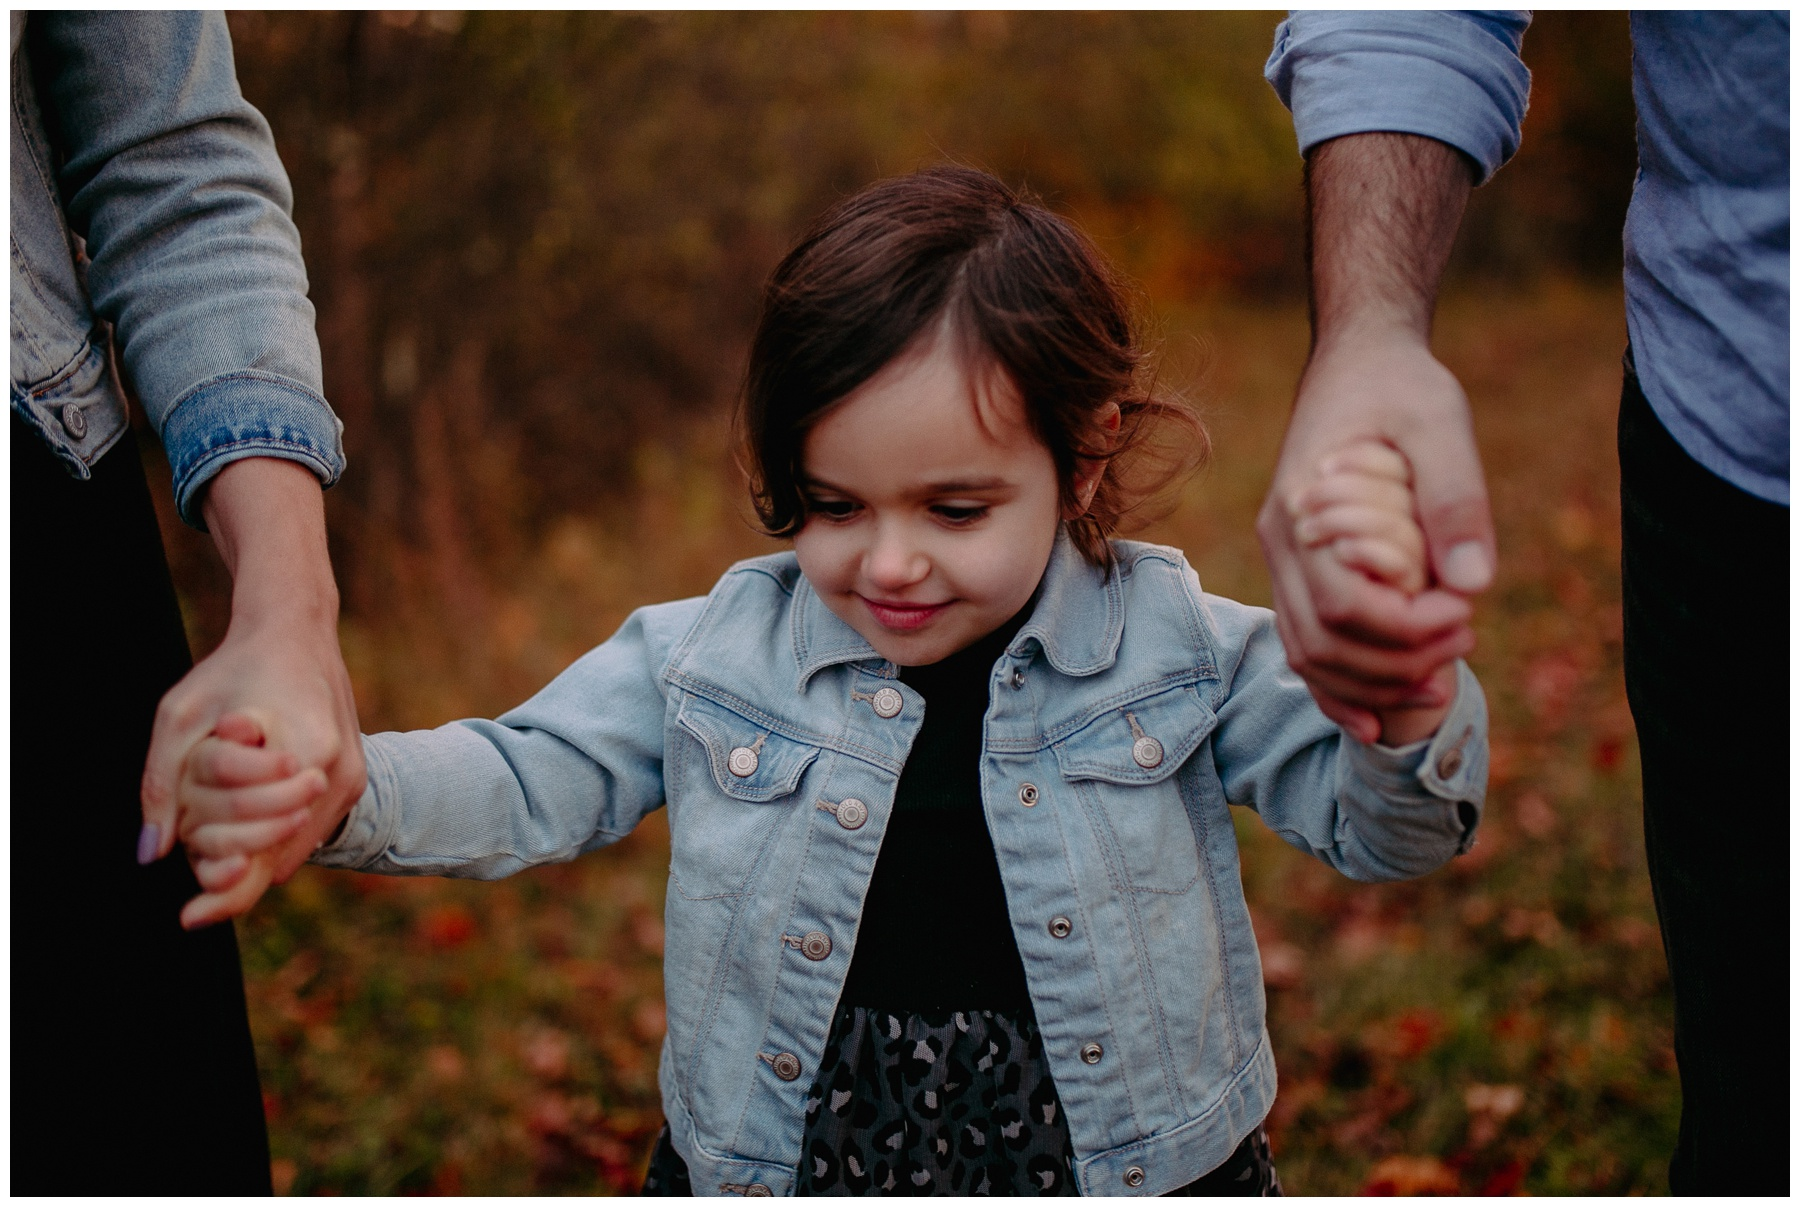 kerry ford photography - fall autumn family session perth036.jpg